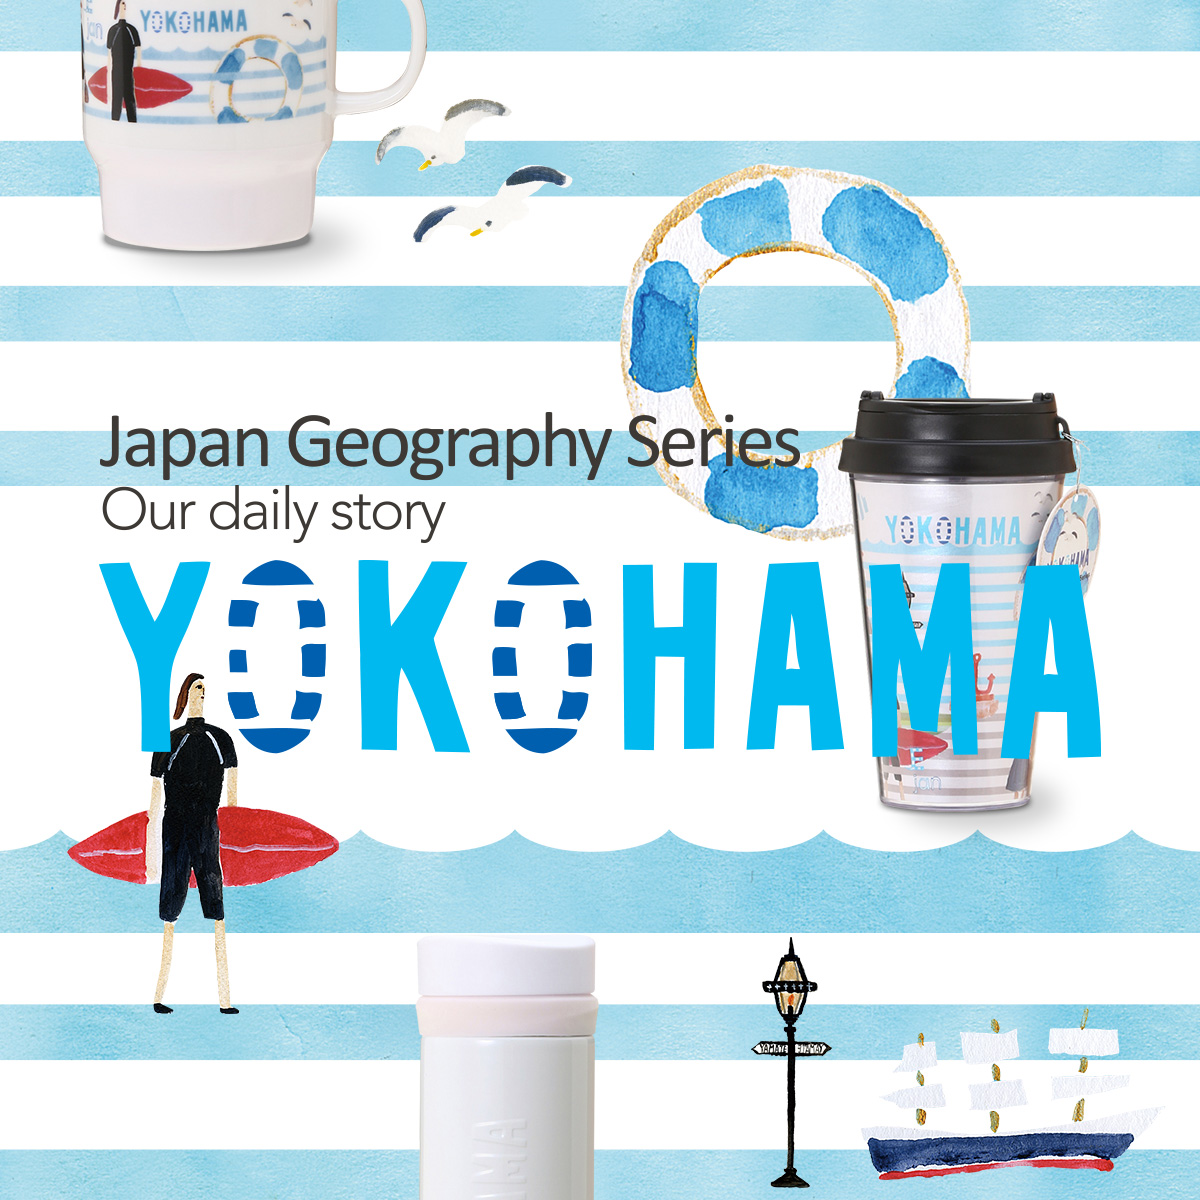 Japan Geography Series 横浜